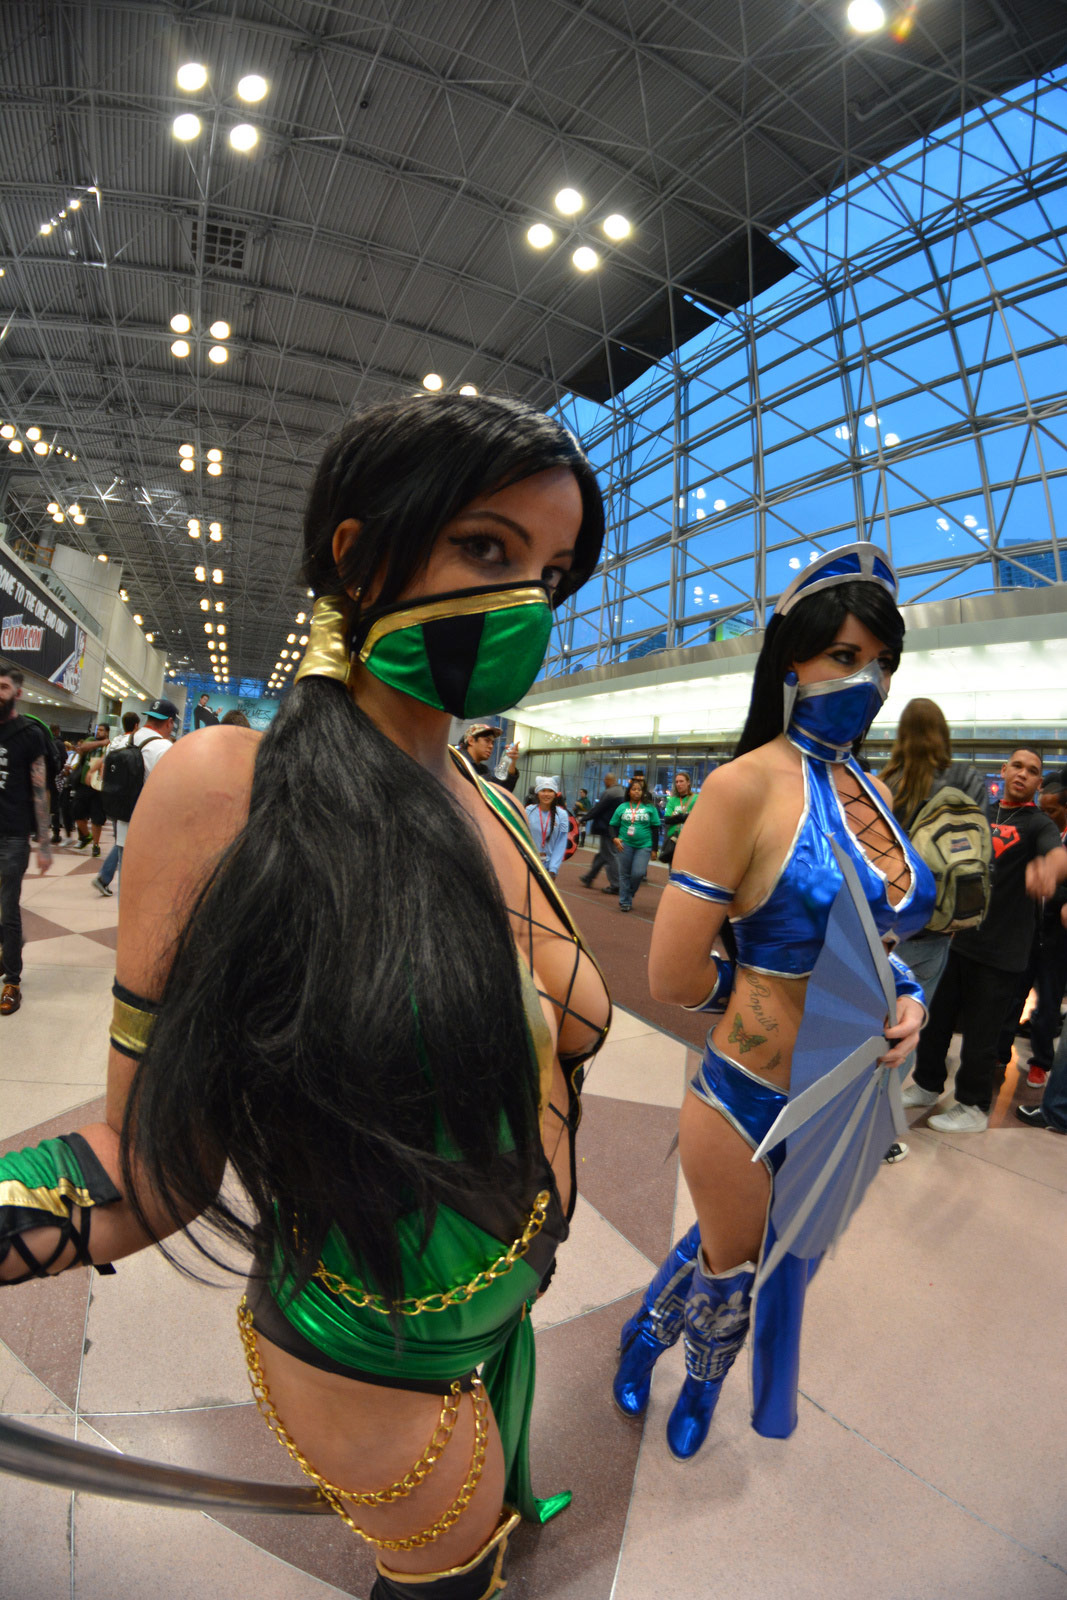 Cosplay photo from the 2013 New York Comic-Con by Jason24cf #1